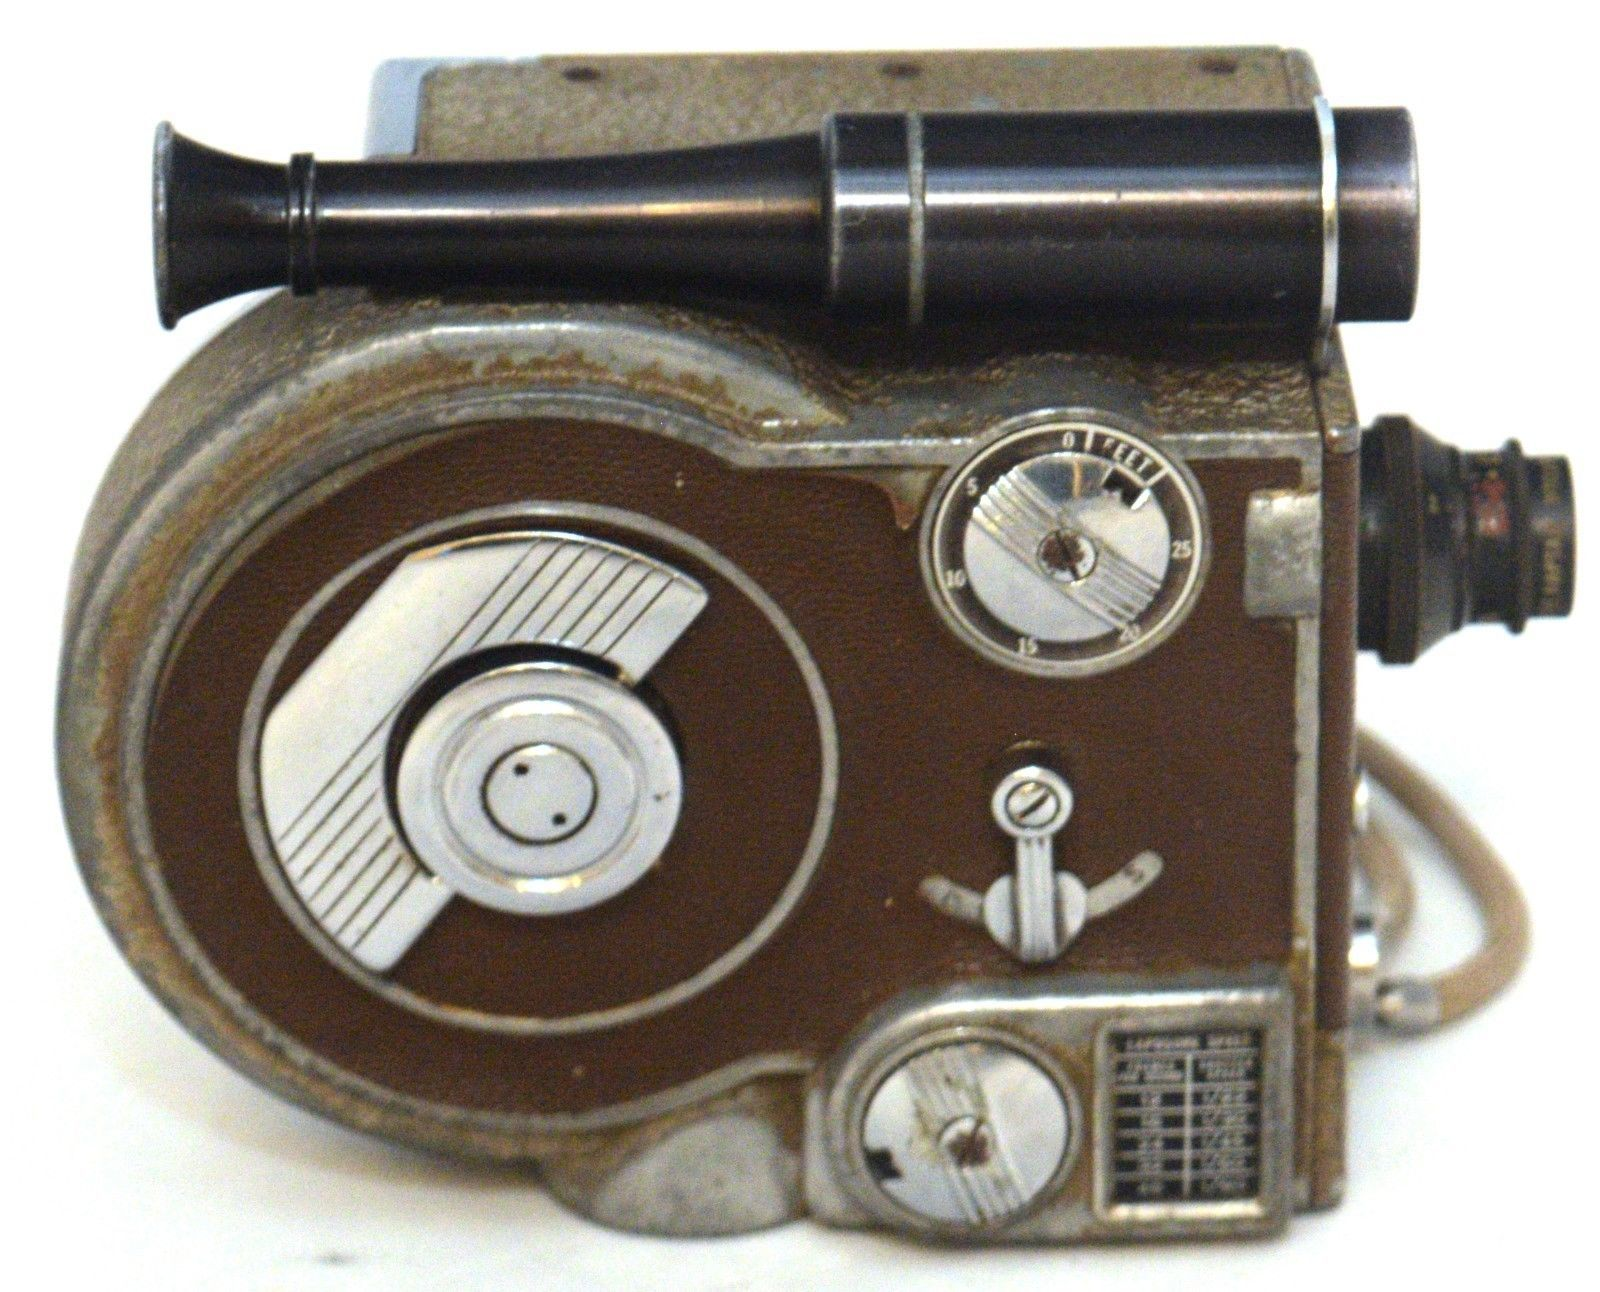 REVERE EIGHT 8 Model Seventy 70 Magazine Cine Vintage 8mm Film Movie Camera USA